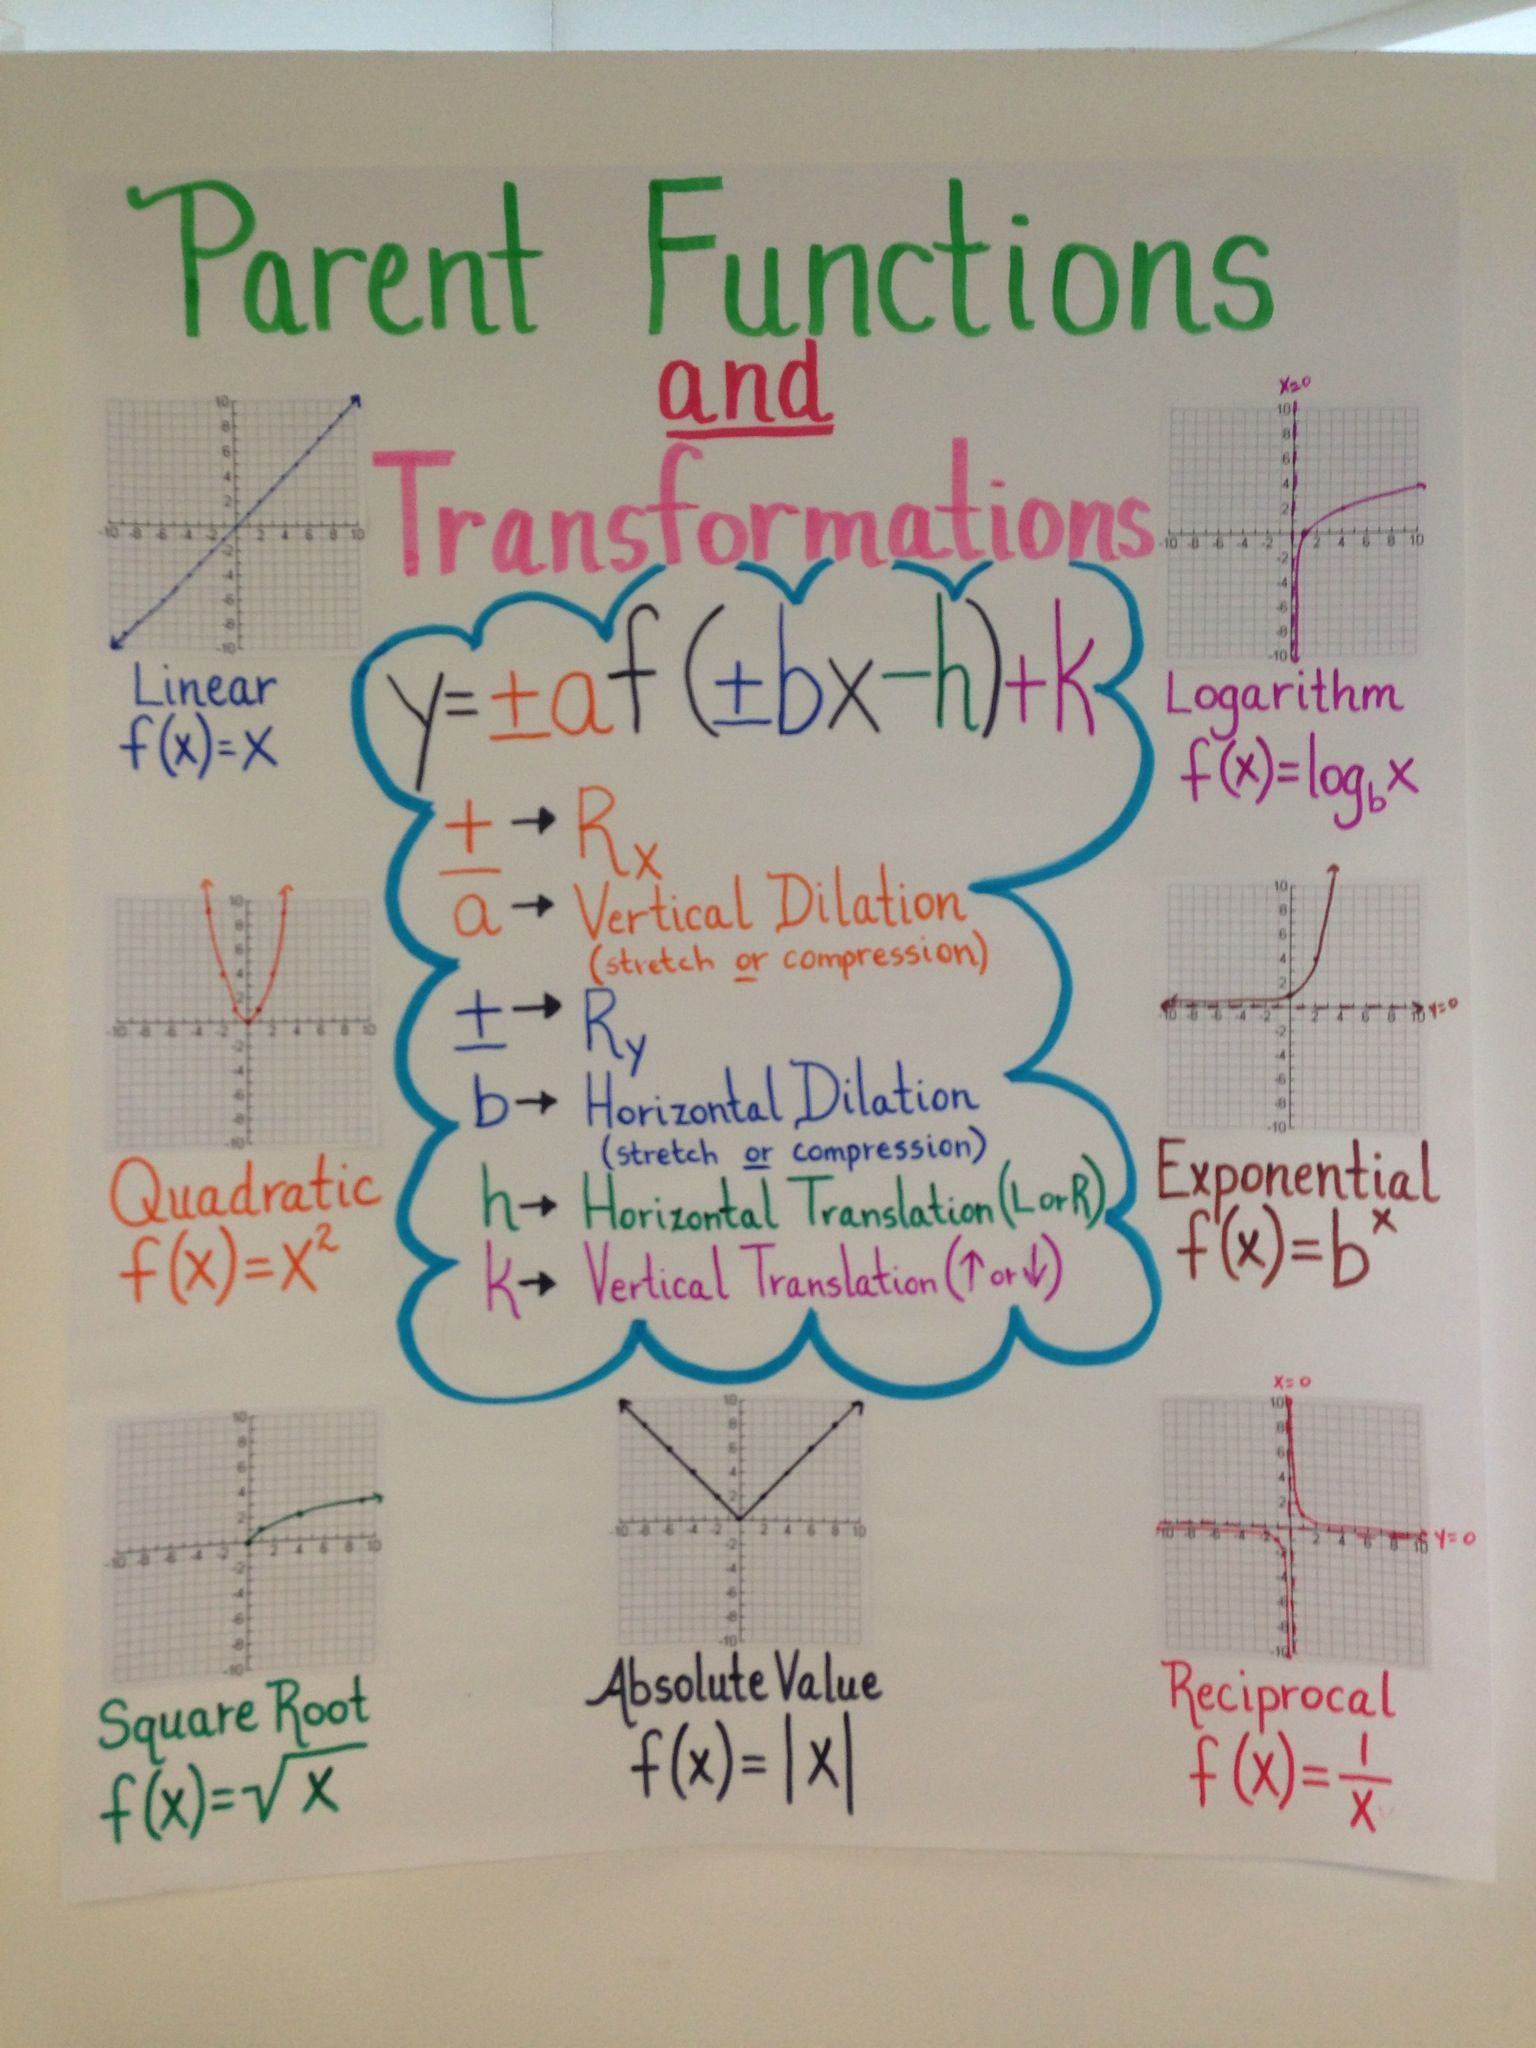 anchor chart for algebra ii eoc review on parent functions and transformations math algebra. Black Bedroom Furniture Sets. Home Design Ideas